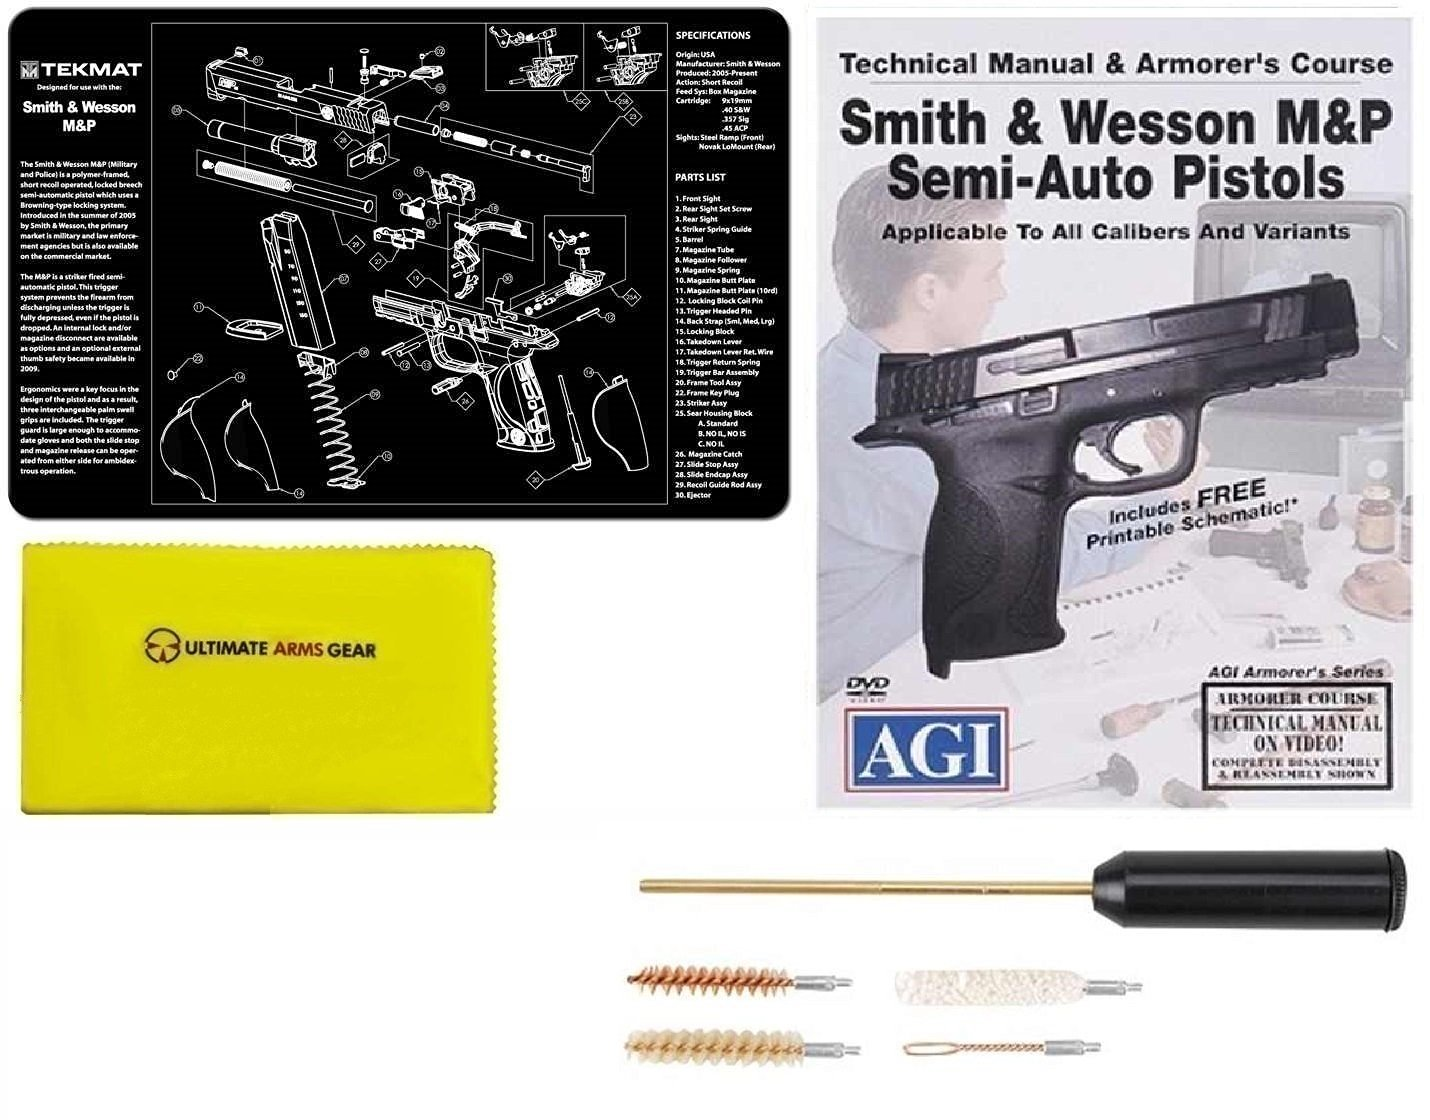 Ultimate Arms Gear Gunsmith & Armorer's Cleaning Work Bench Gun Mat S&W Smith & Wesson M&P + Compact Pocket Sized Travelling Cleaning Kit + American Gunsmithing Institute Pistols Armorer's Course + Gun Care and Reel Silicone Cleaning Cloth